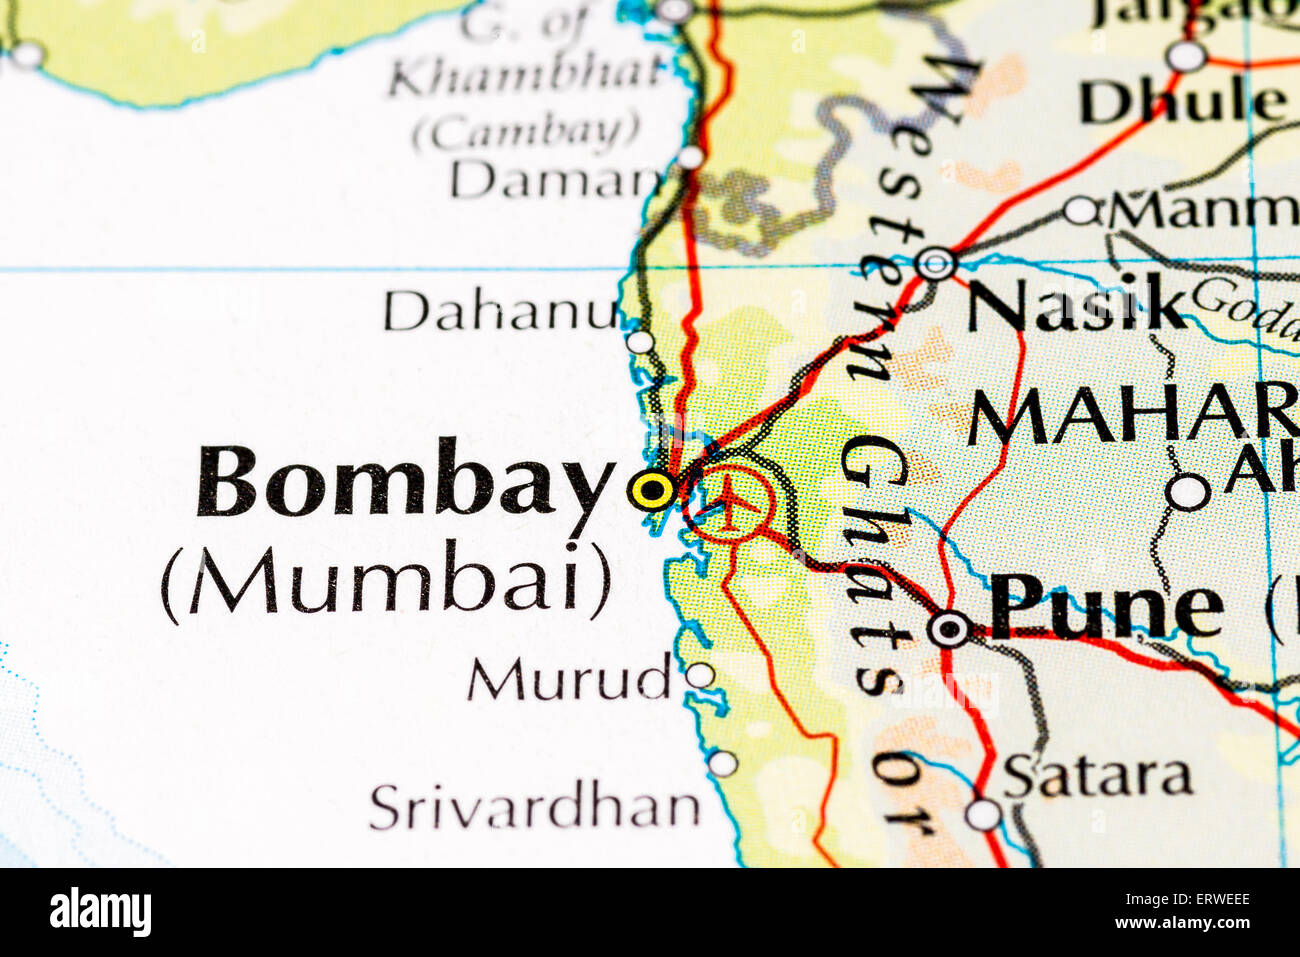 close up of atlas map of mumbai india which was formerly known as